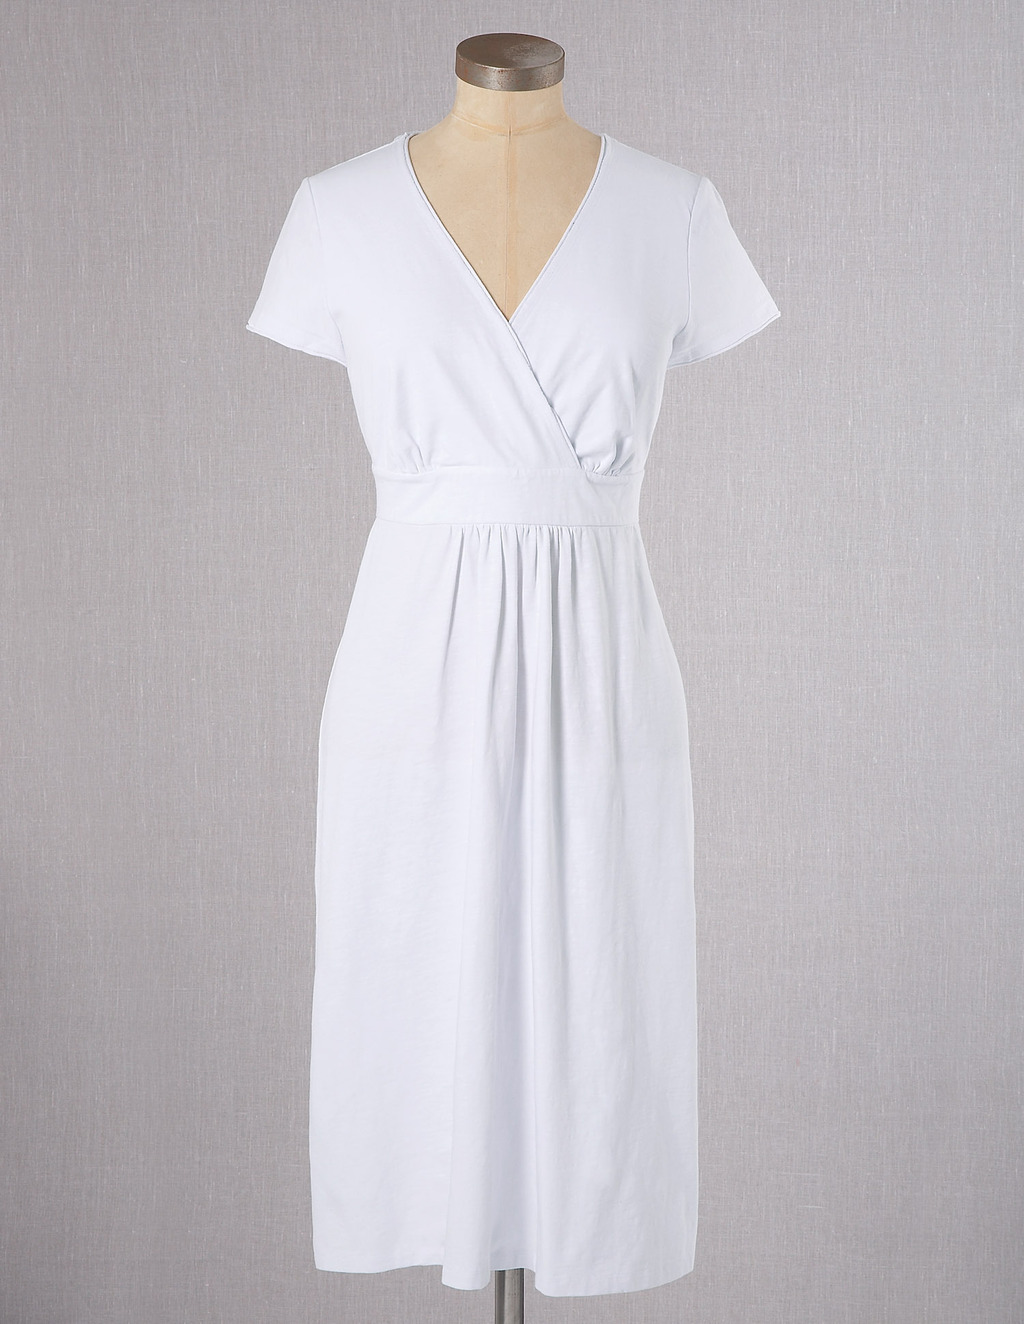 Casual Jersey Dress - style: faux wrap/wrap; neckline: v-neck; fit: empire; pattern: plain; waist detail: fitted waist; bust detail: subtle bust detail; predominant colour: white; occasions: casual, holiday; length: on the knee; fibres: cotton - stretch; hip detail: sculpting darts/pleats/seams at hip; sleeve length: short sleeve; sleeve style: standard; pattern type: fabric; texture group: jersey - stretchy/drapey; season: s/s 2013